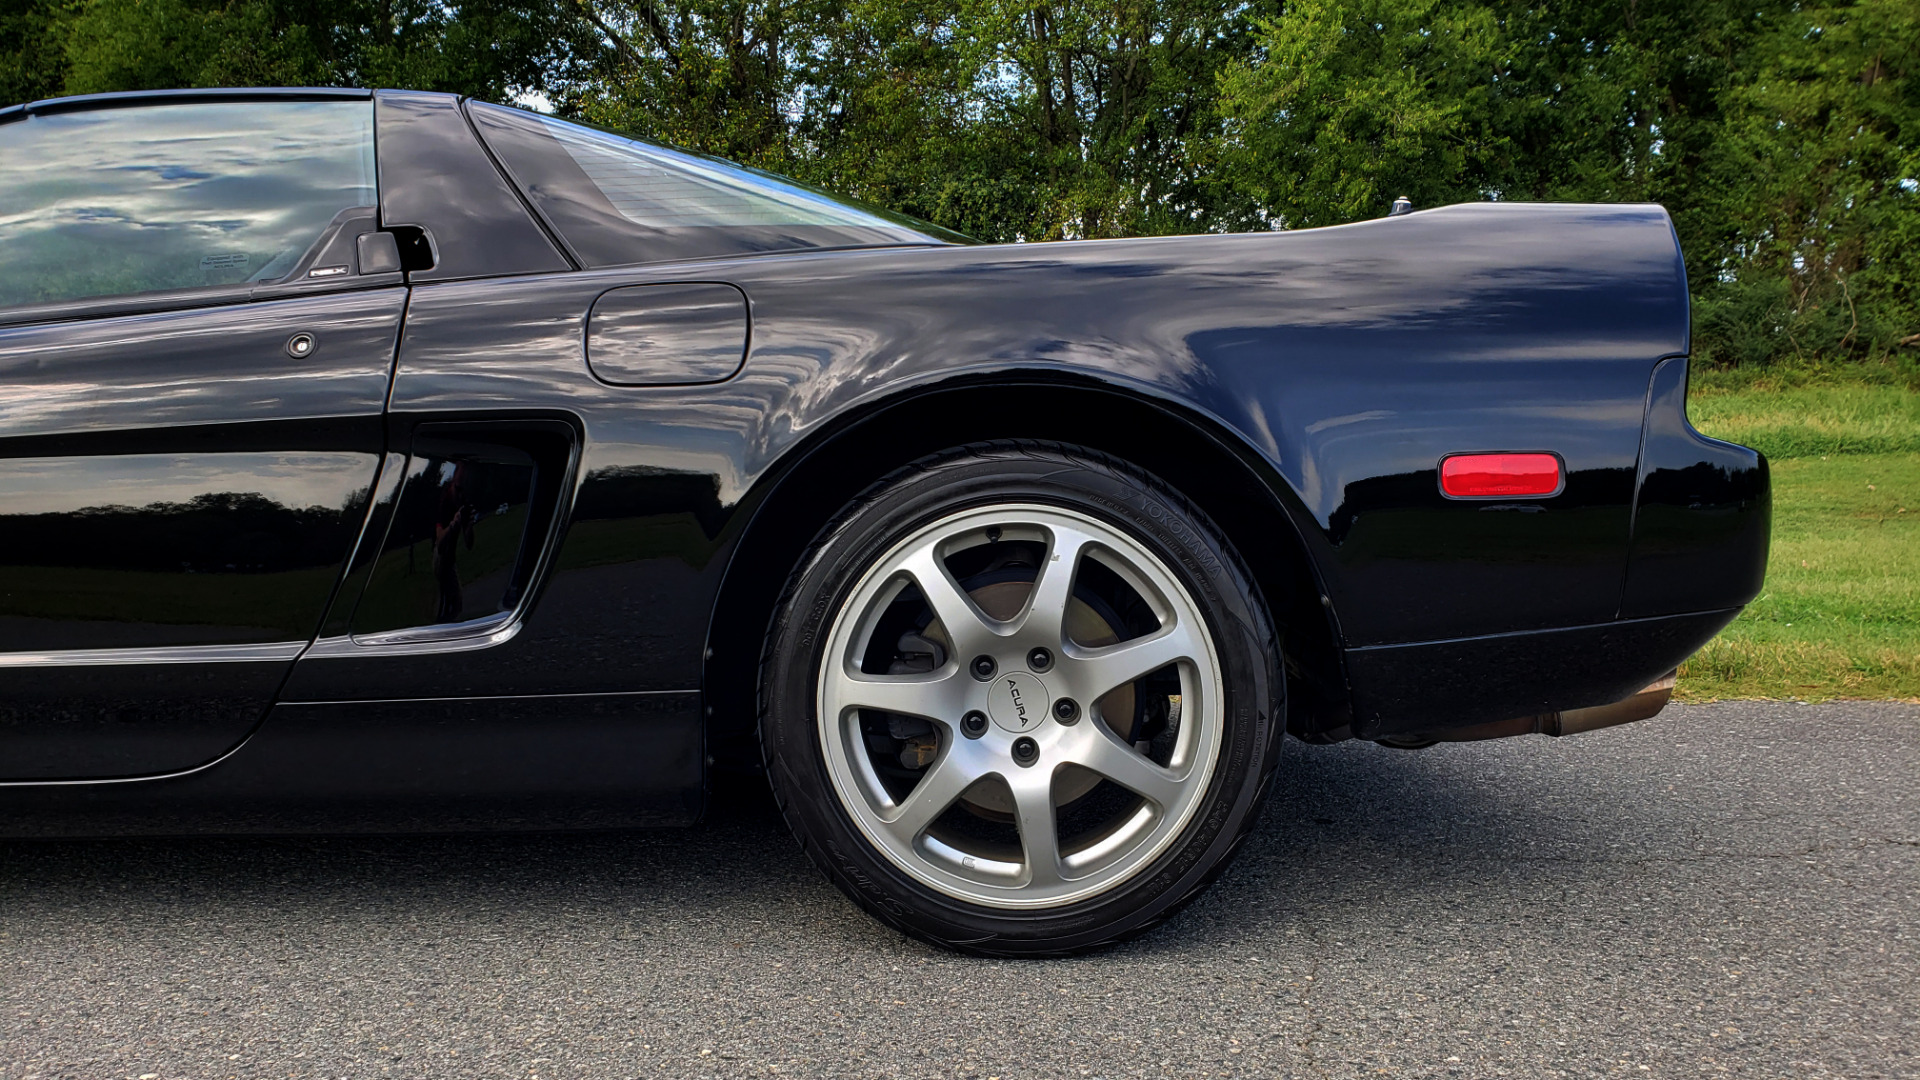 Used 1995 Acura NSX OPEN TOP / 5-SPD MAN / LOW MILES / SUPER CLEAN for sale Sold at Formula Imports in Charlotte NC 28227 12